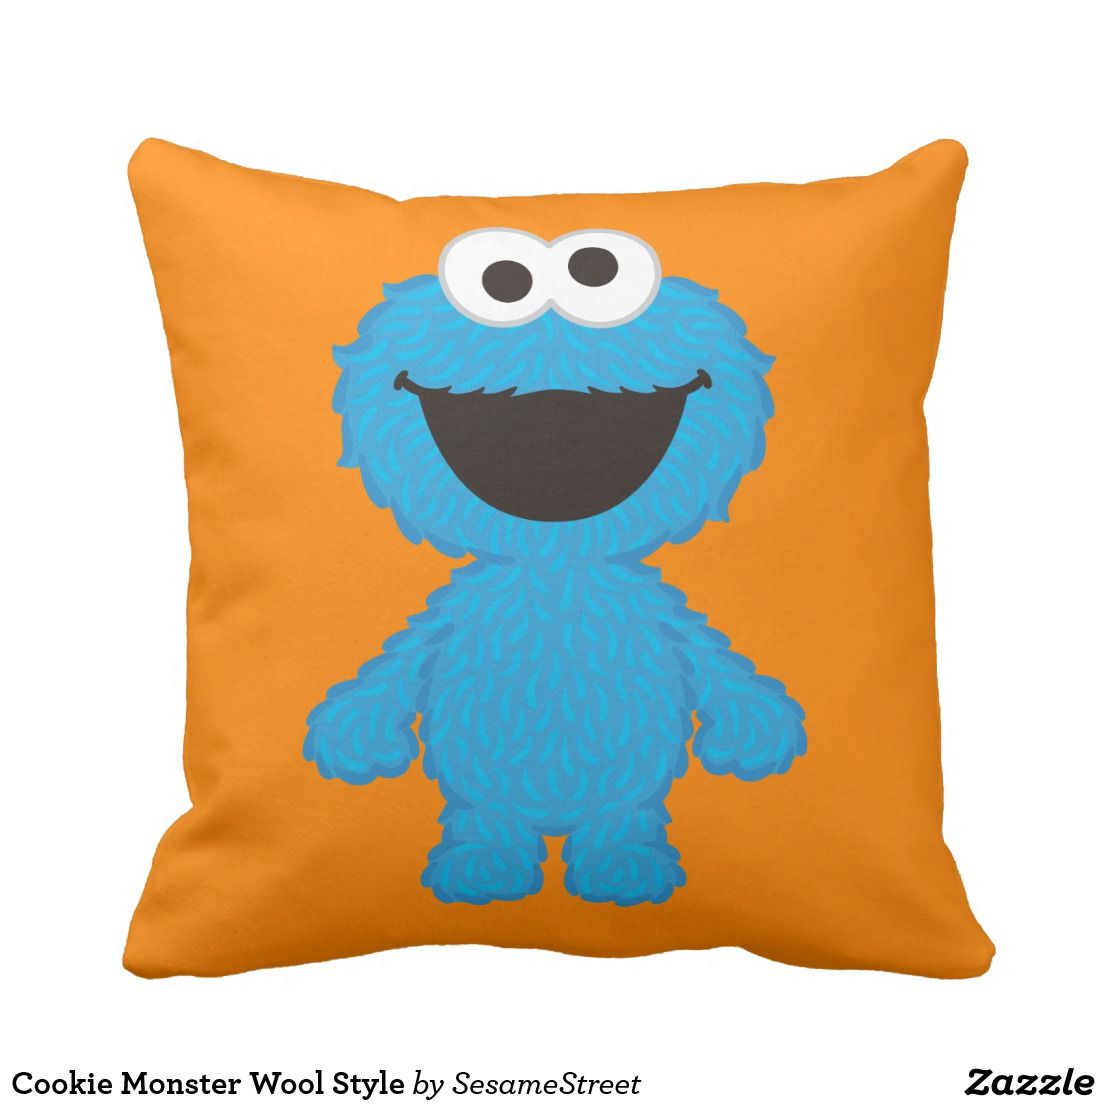 Cookie Monster Wool Style Throw Pillow Zazzle Com Throw